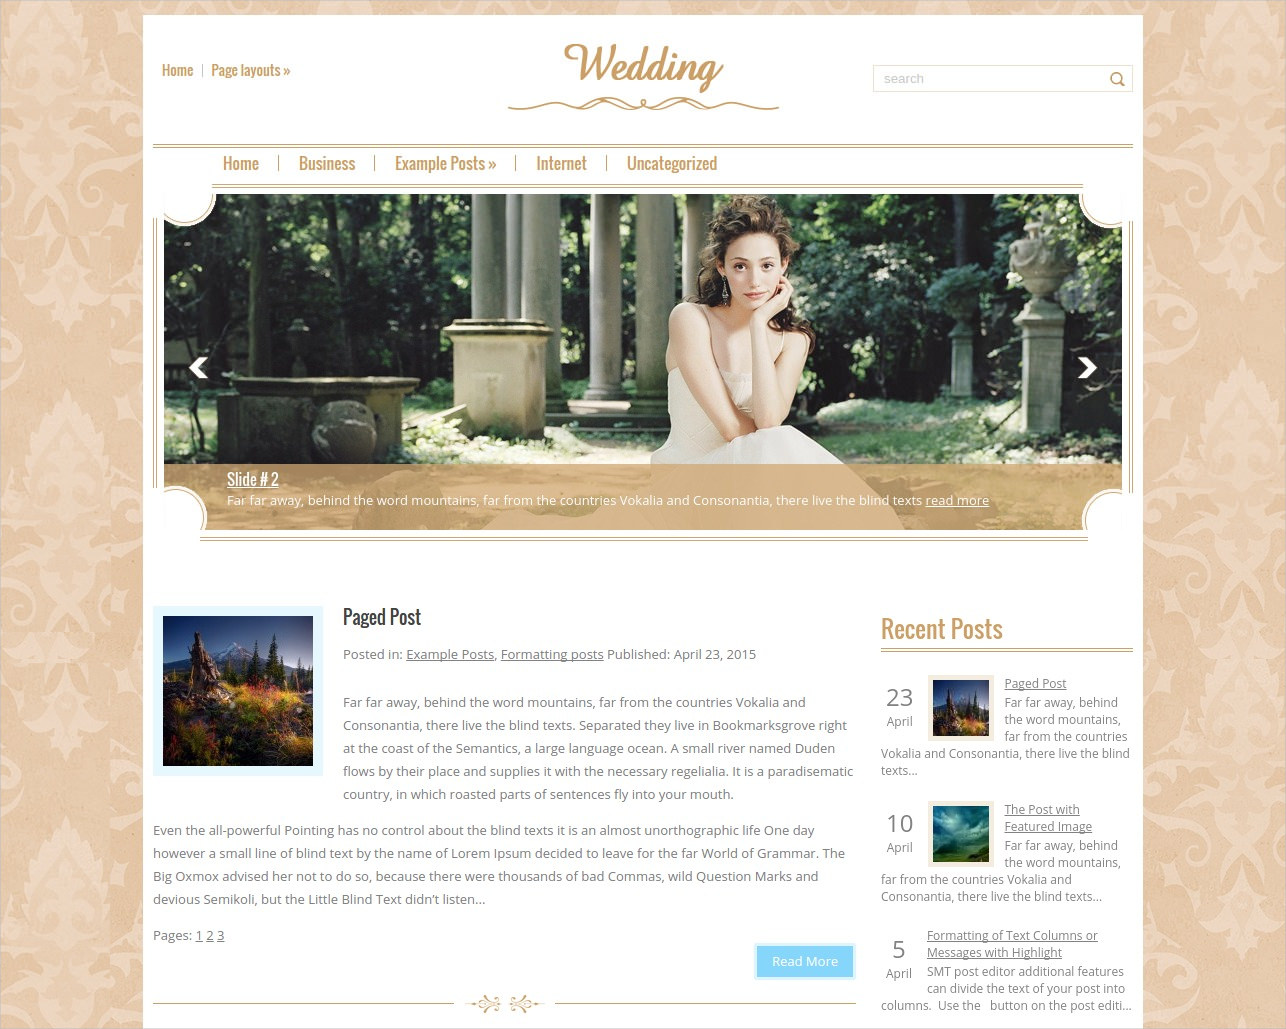 50+ Top Wedding WordPress Themes & Templates | Design Trends ...